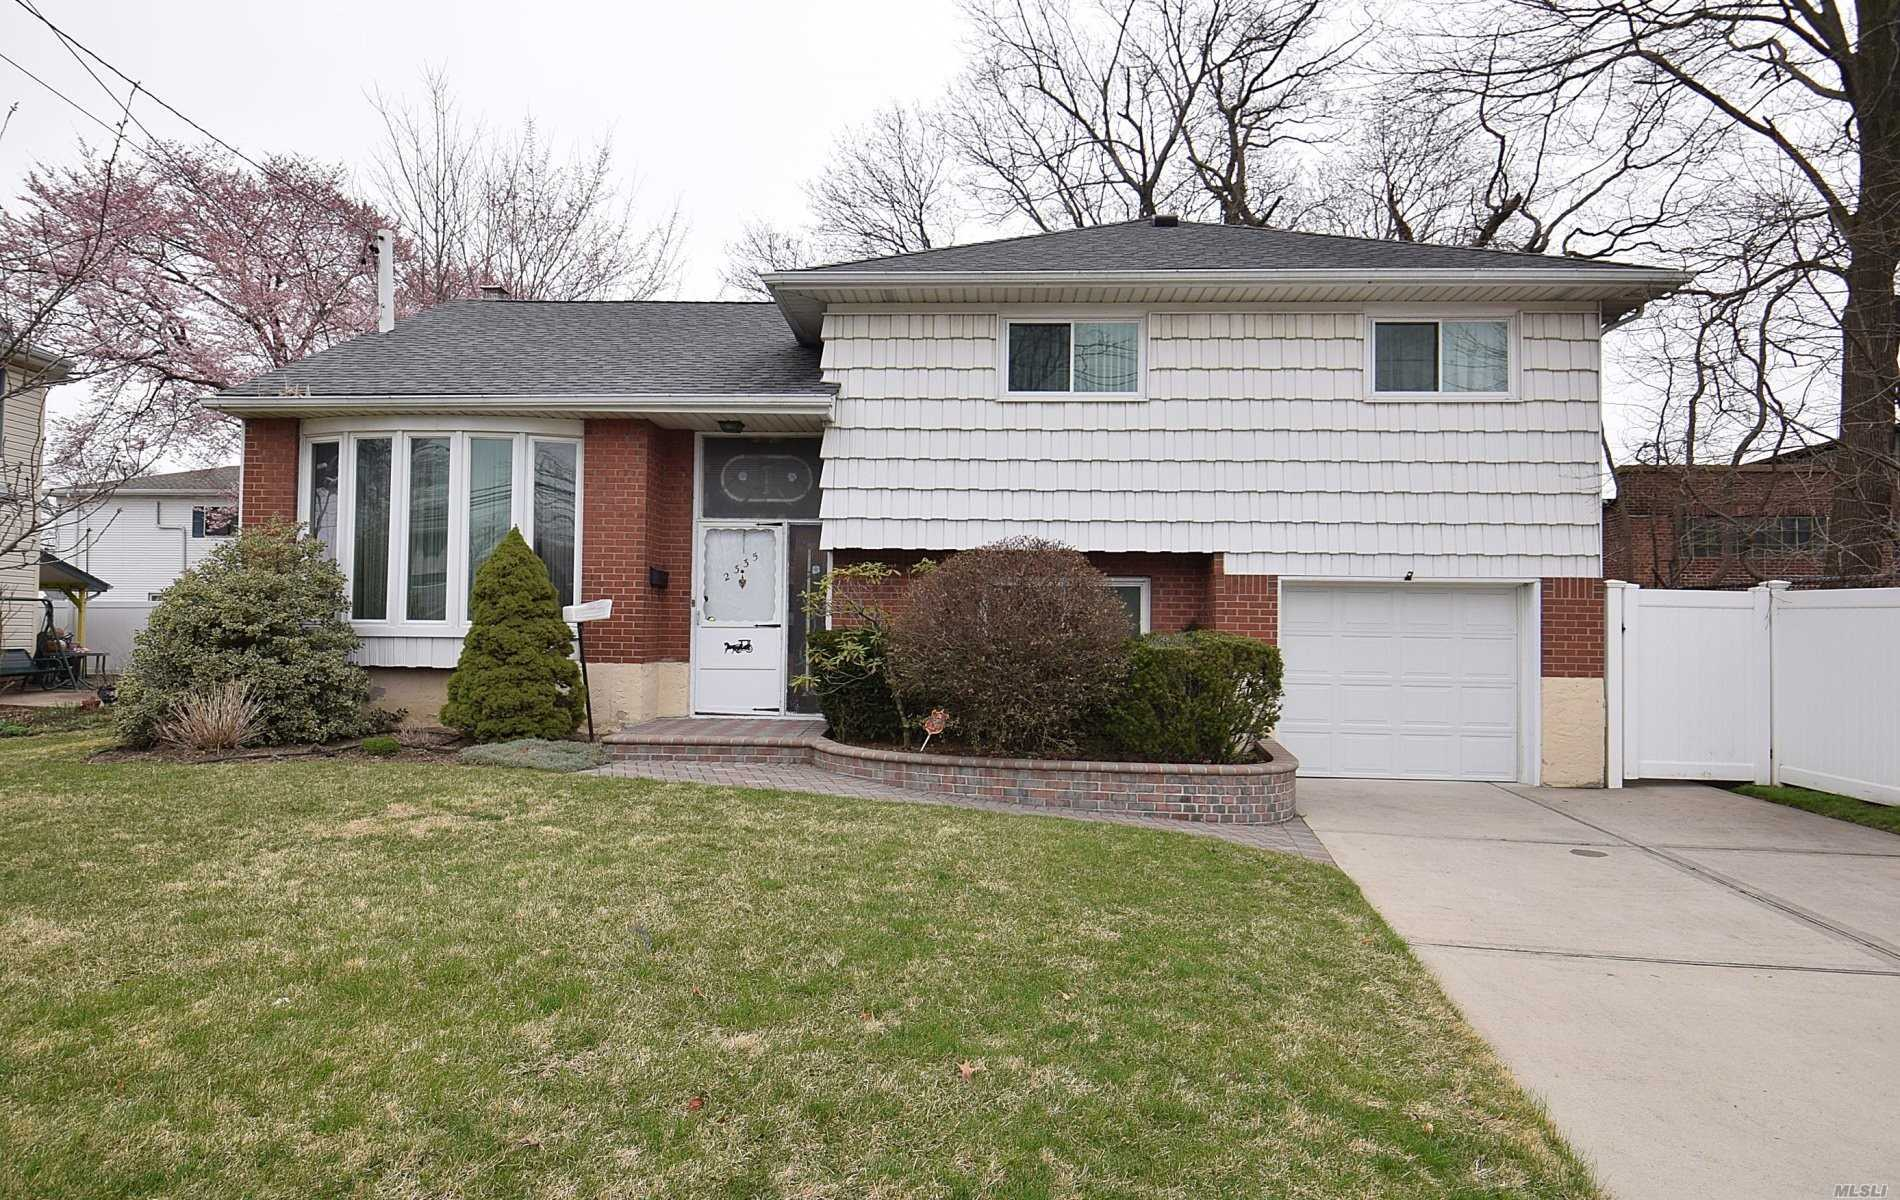 wonderful Split level.2 updated baths, Replacement windows, Hardwood floors under carpet, full bath in MBR, wallk to RR flood zone x. great back yard with patio.Stain glass windows. Tankless gas hot water heater.